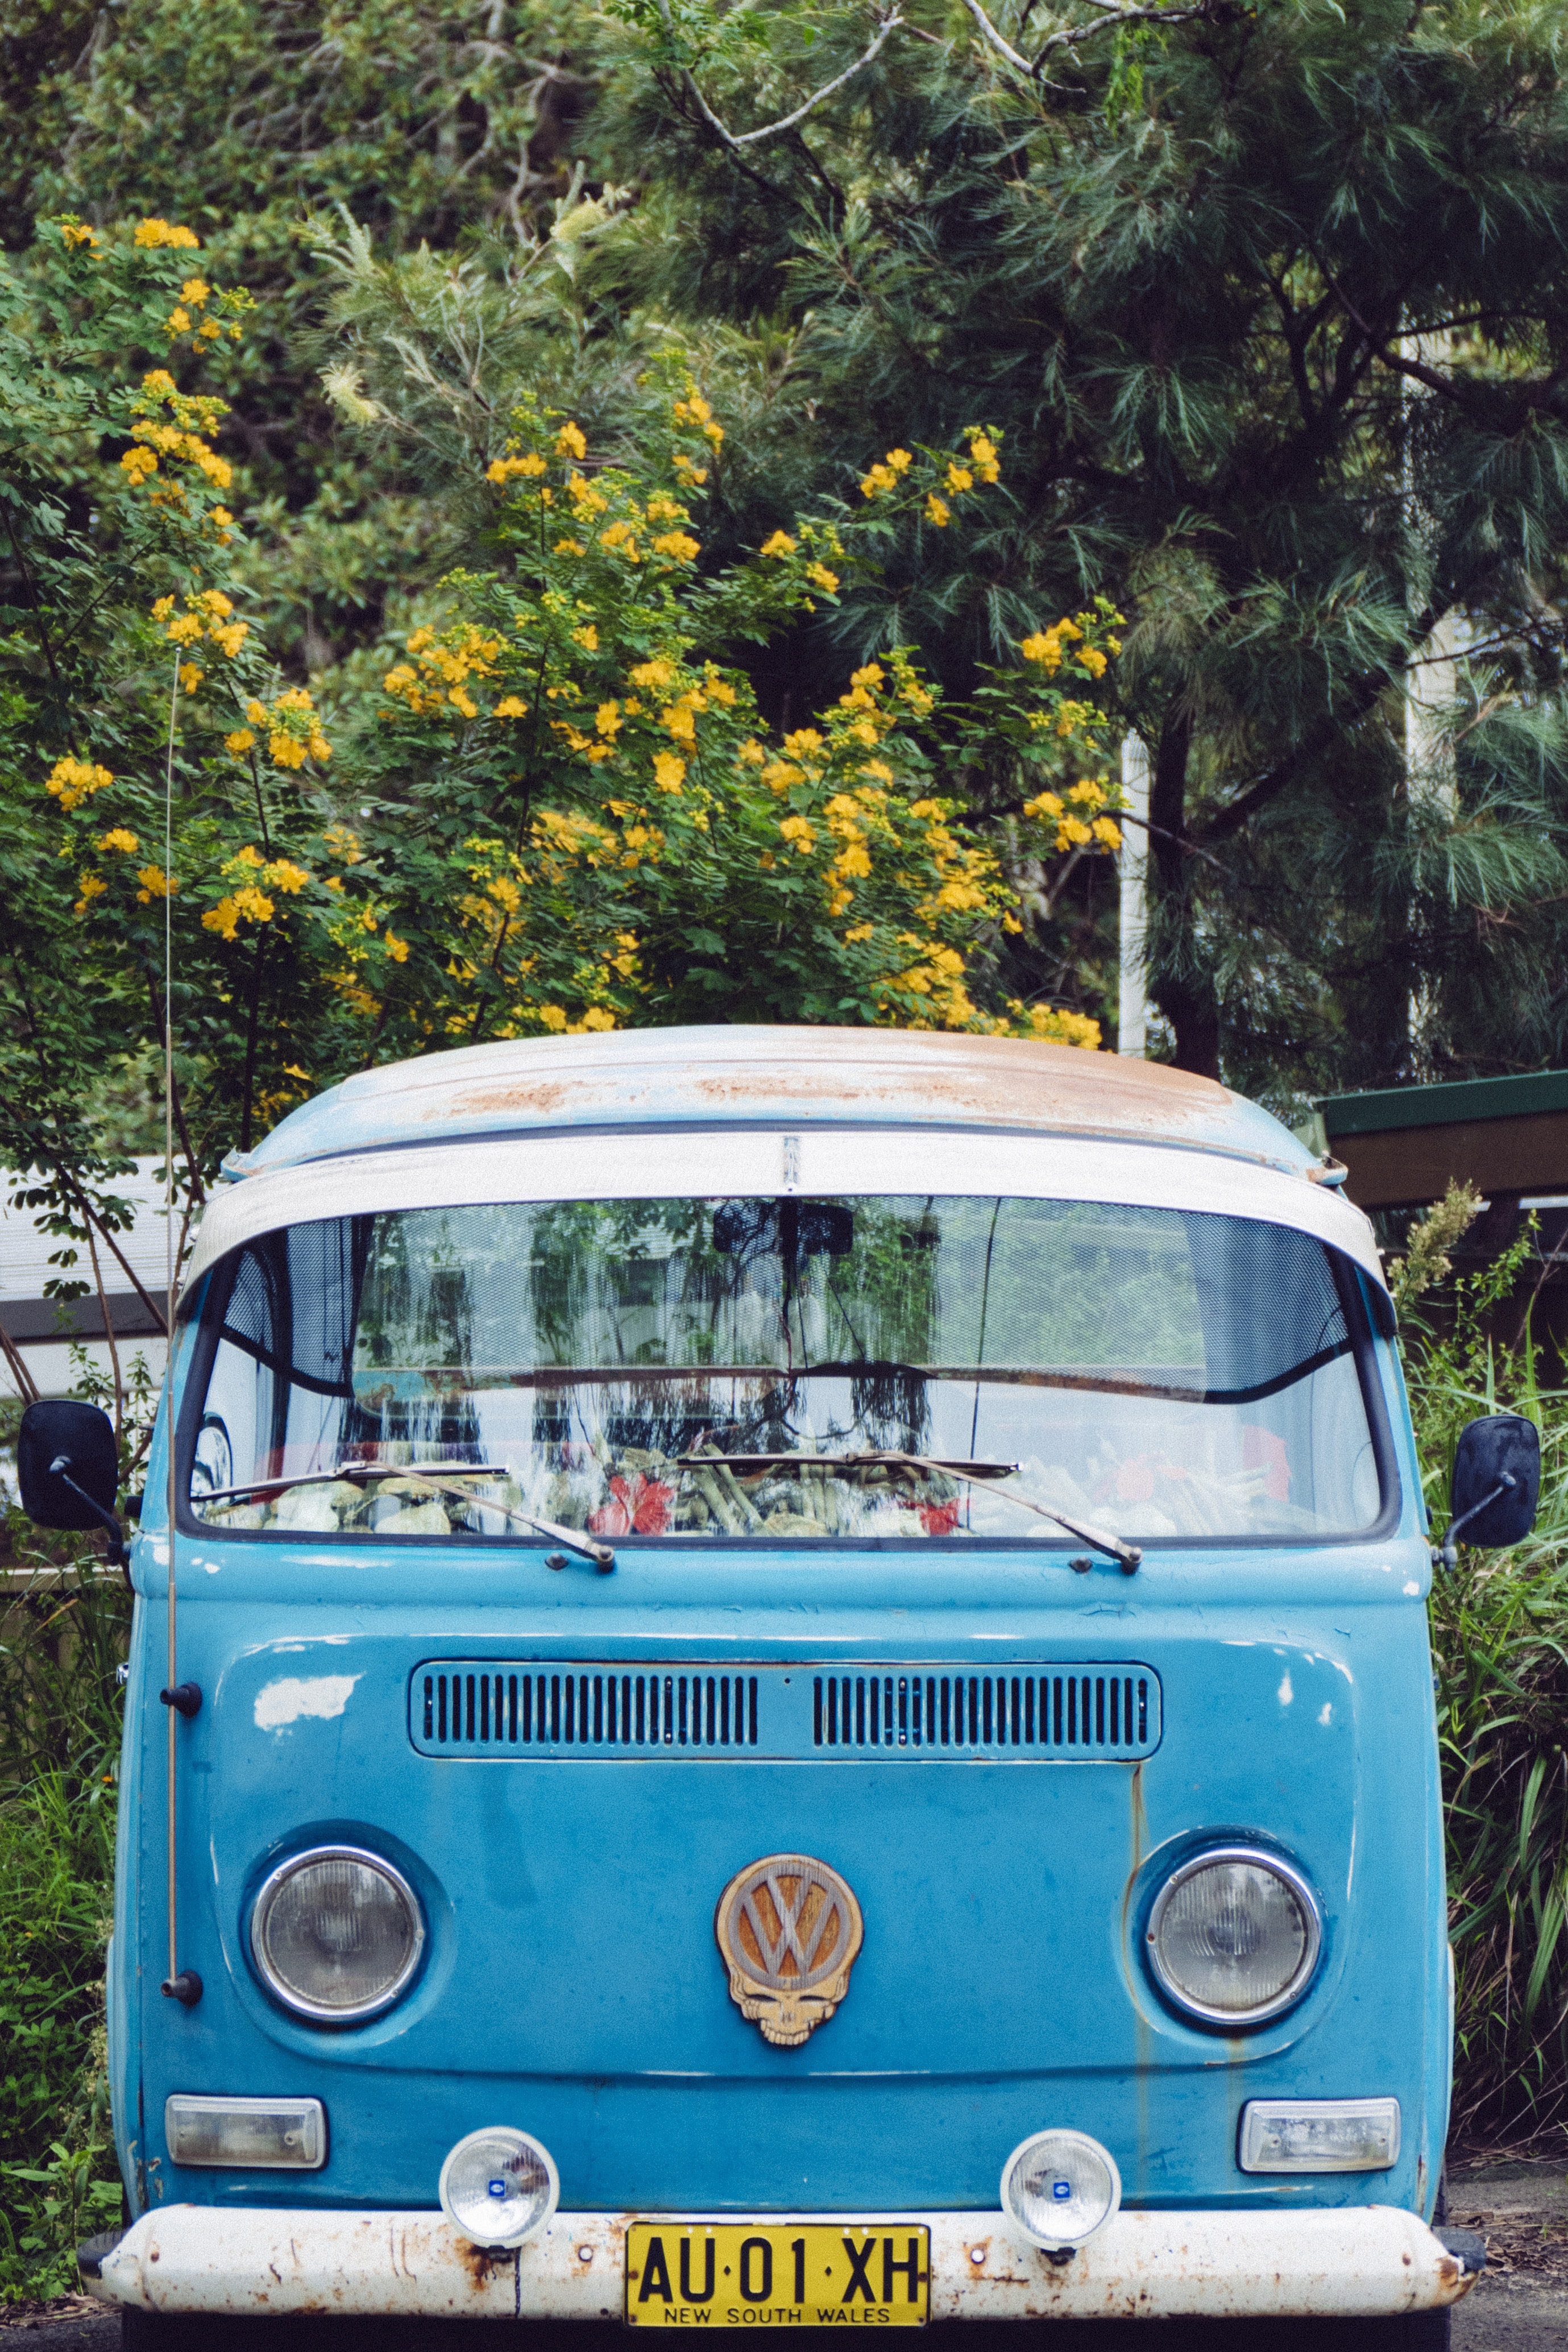 The front of a blue and white vintage Volkswagen bus parked in front of a yellow blooming tree